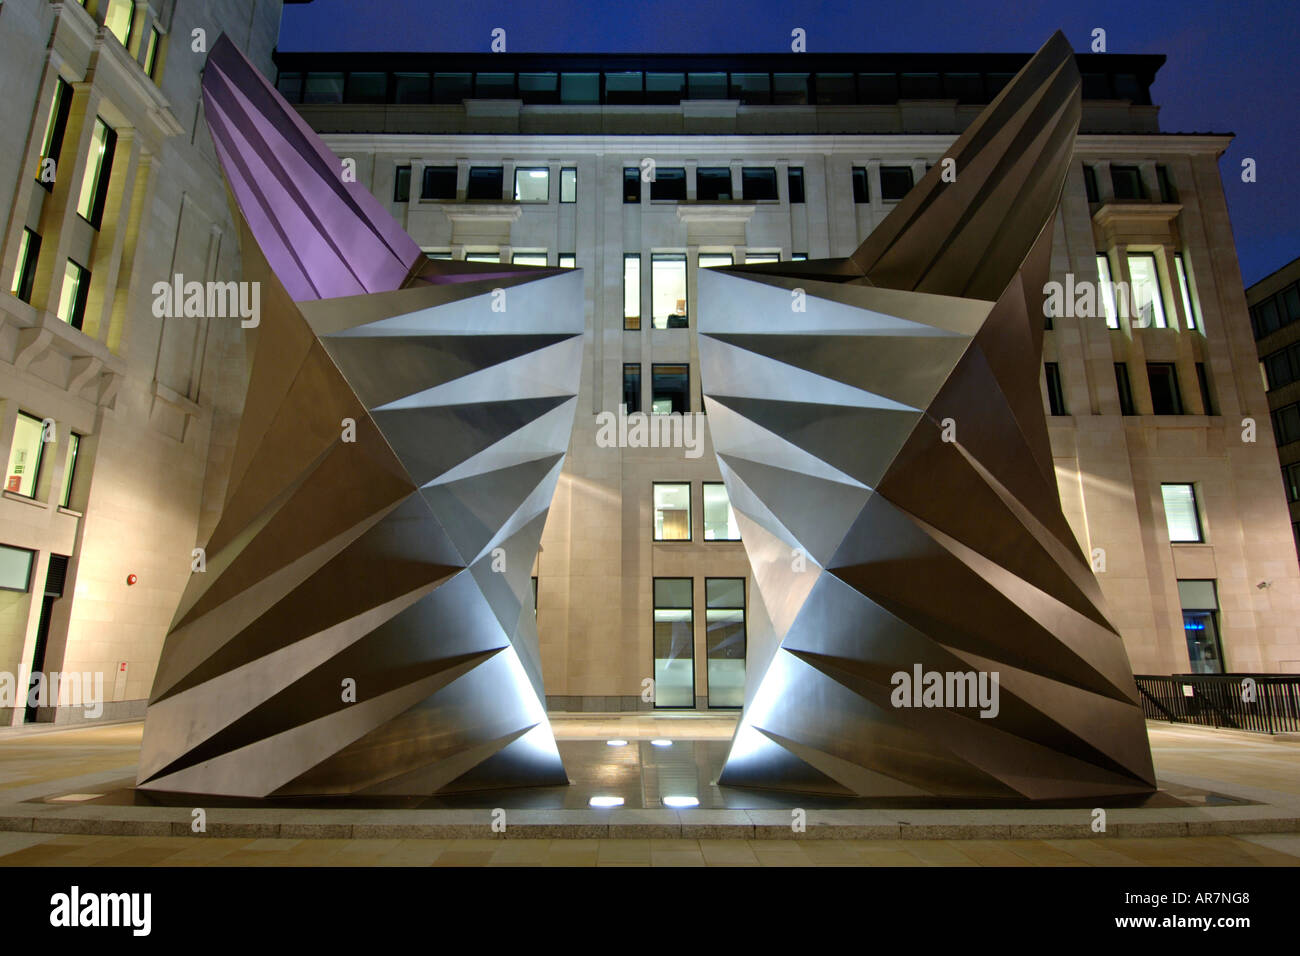 Modern art sculpture near St Paul's cathedral in London. - Stock Image